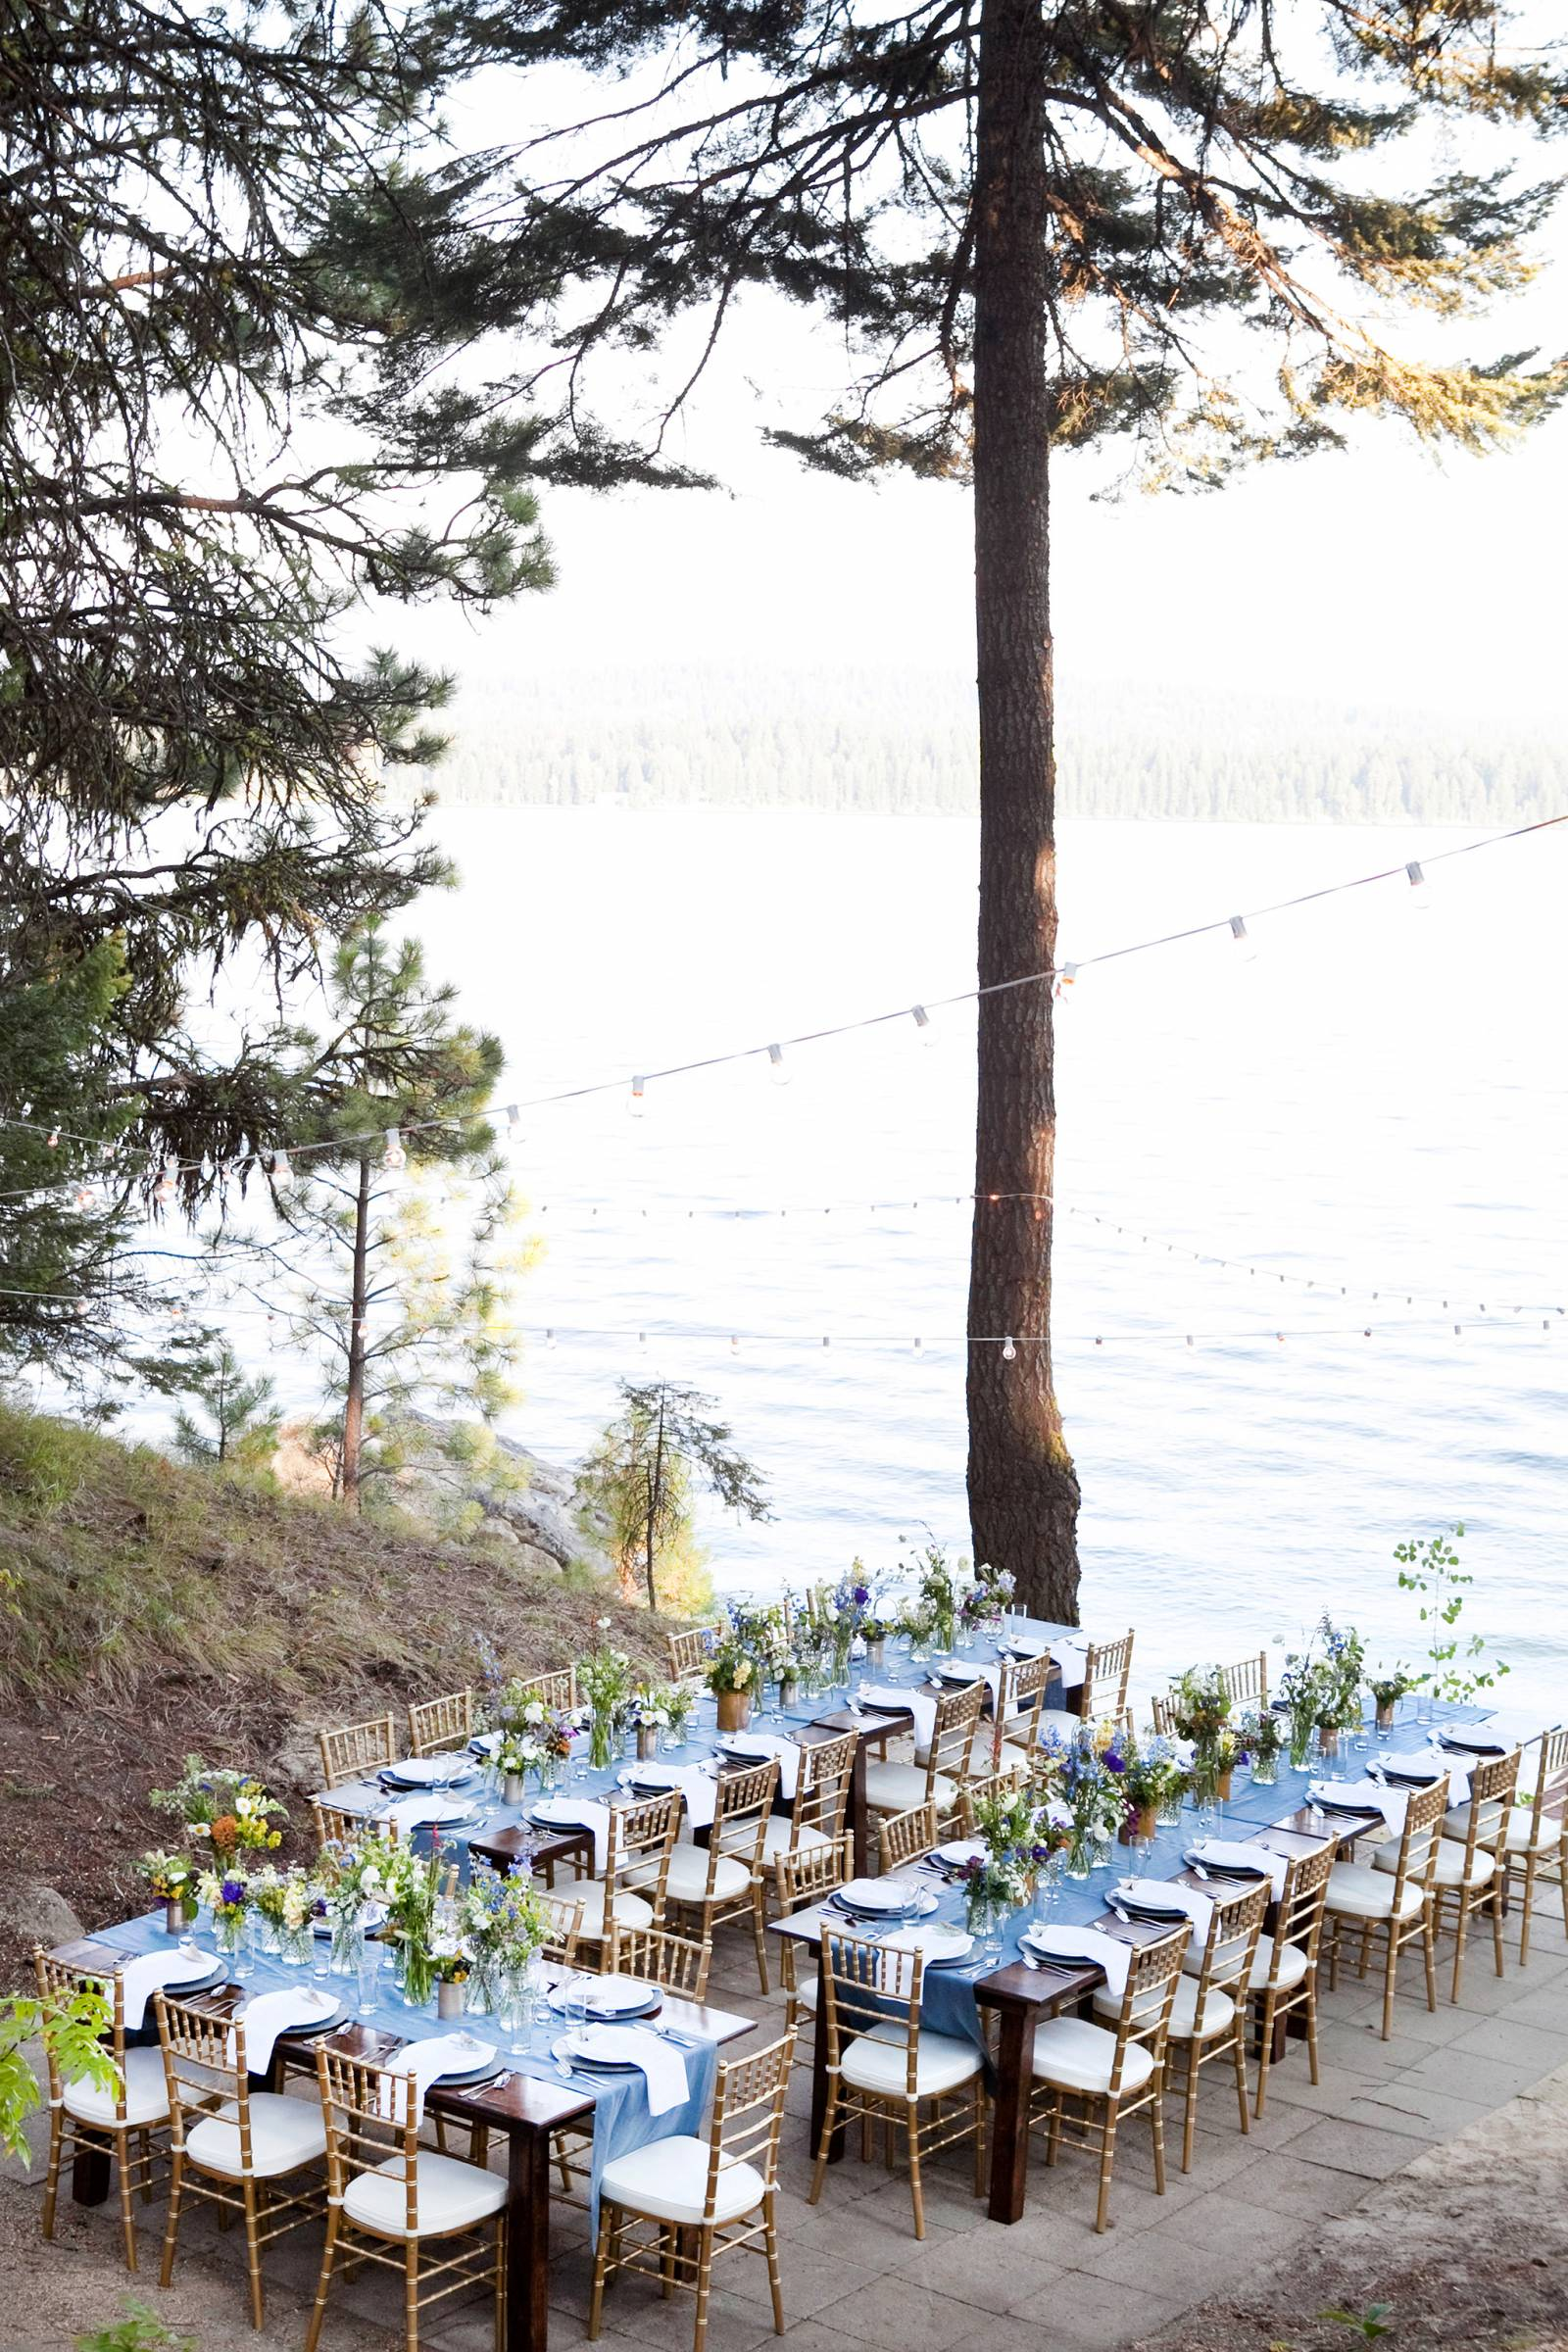 lakeside blue themed wedding reception inspiration captured by Tana Photography